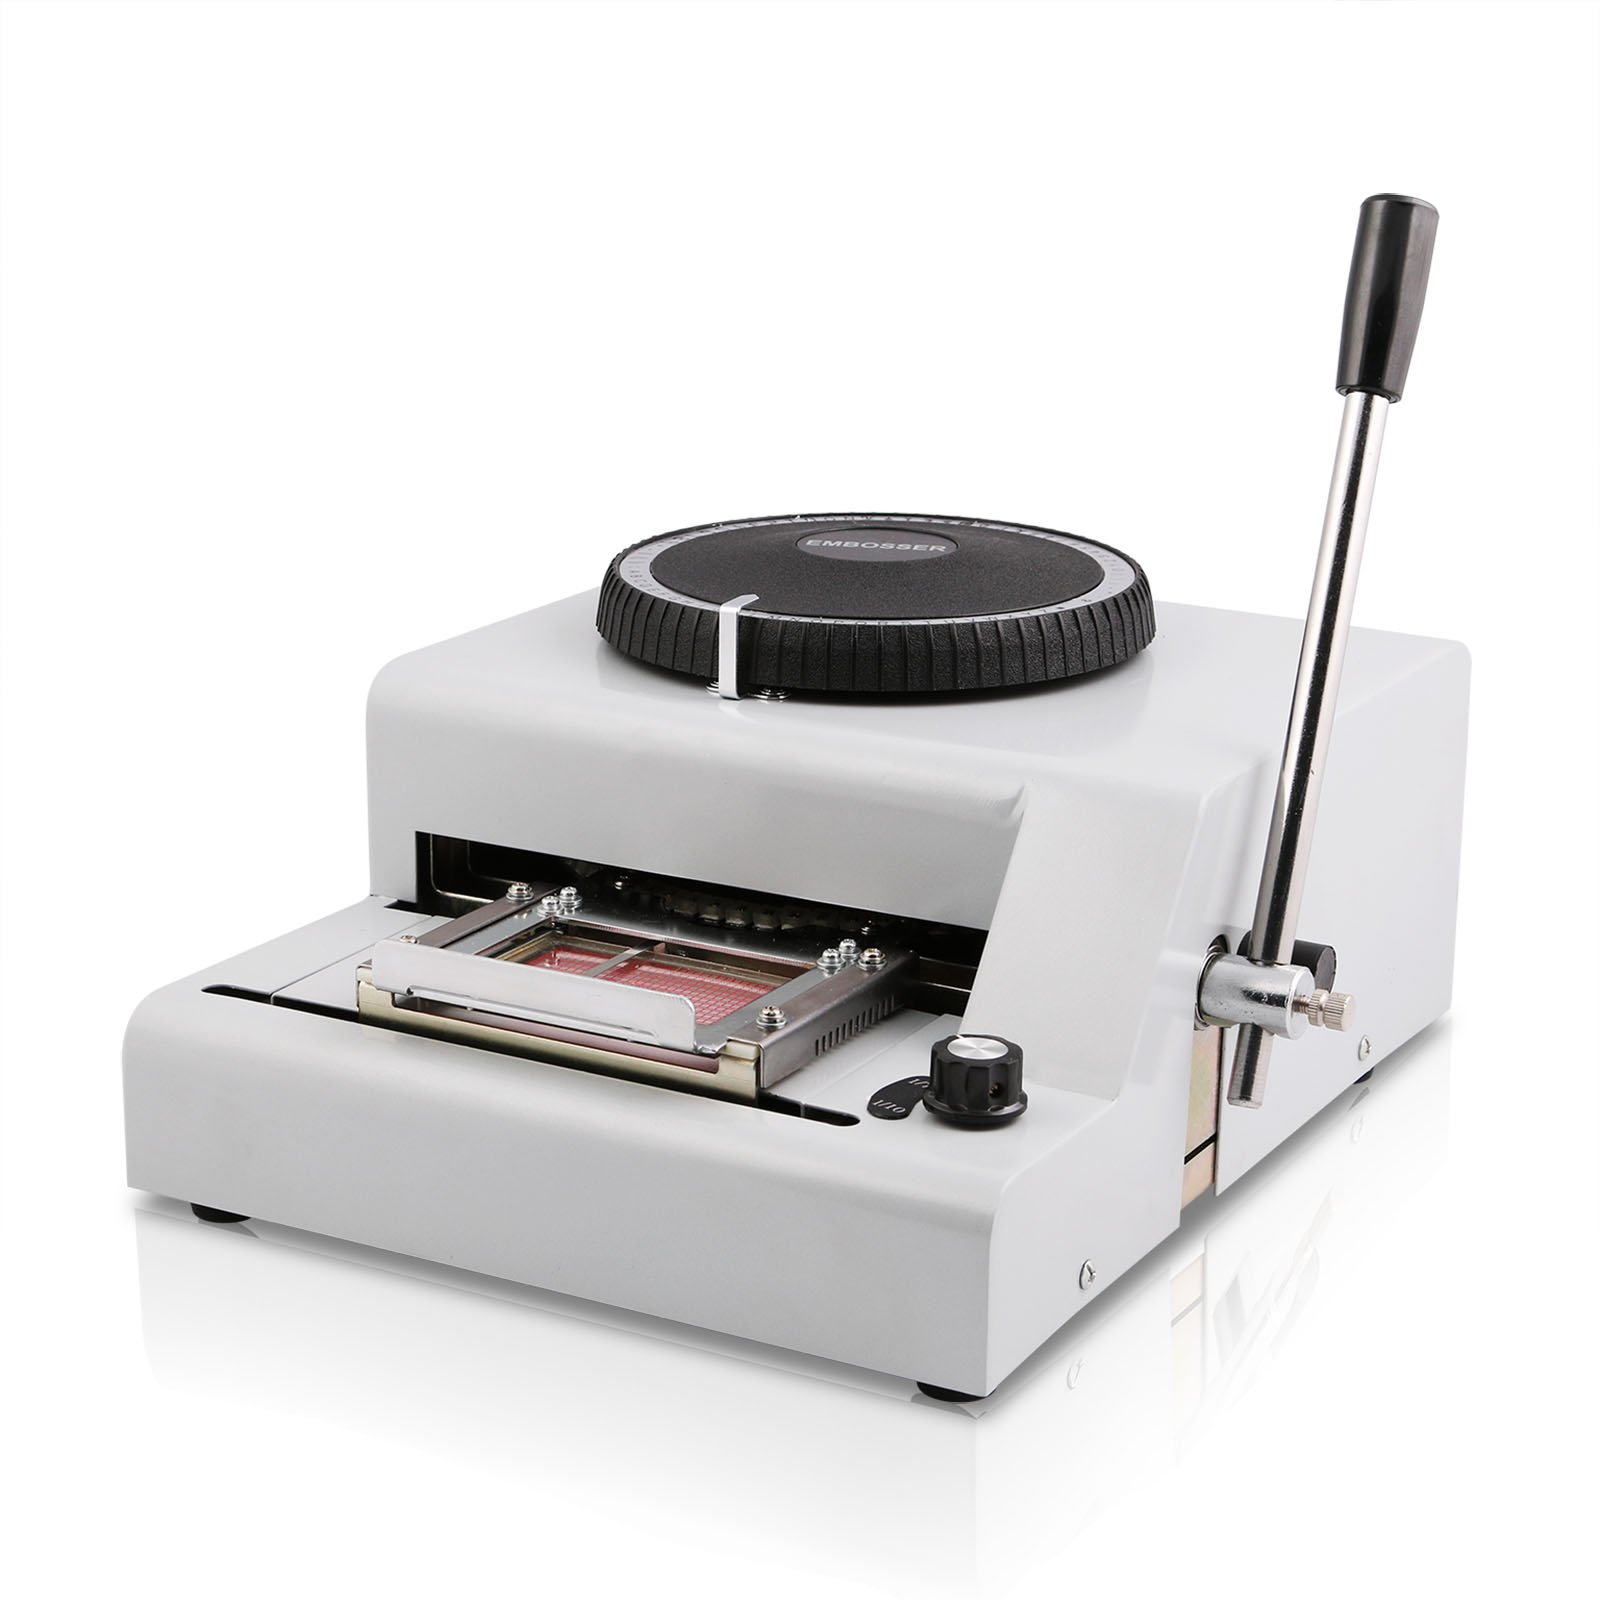 Happybuy 72Characters 72 Characters Printer PVC Card Stamping Machine Credit ID VIP Magnetic Embossing by Happybuy